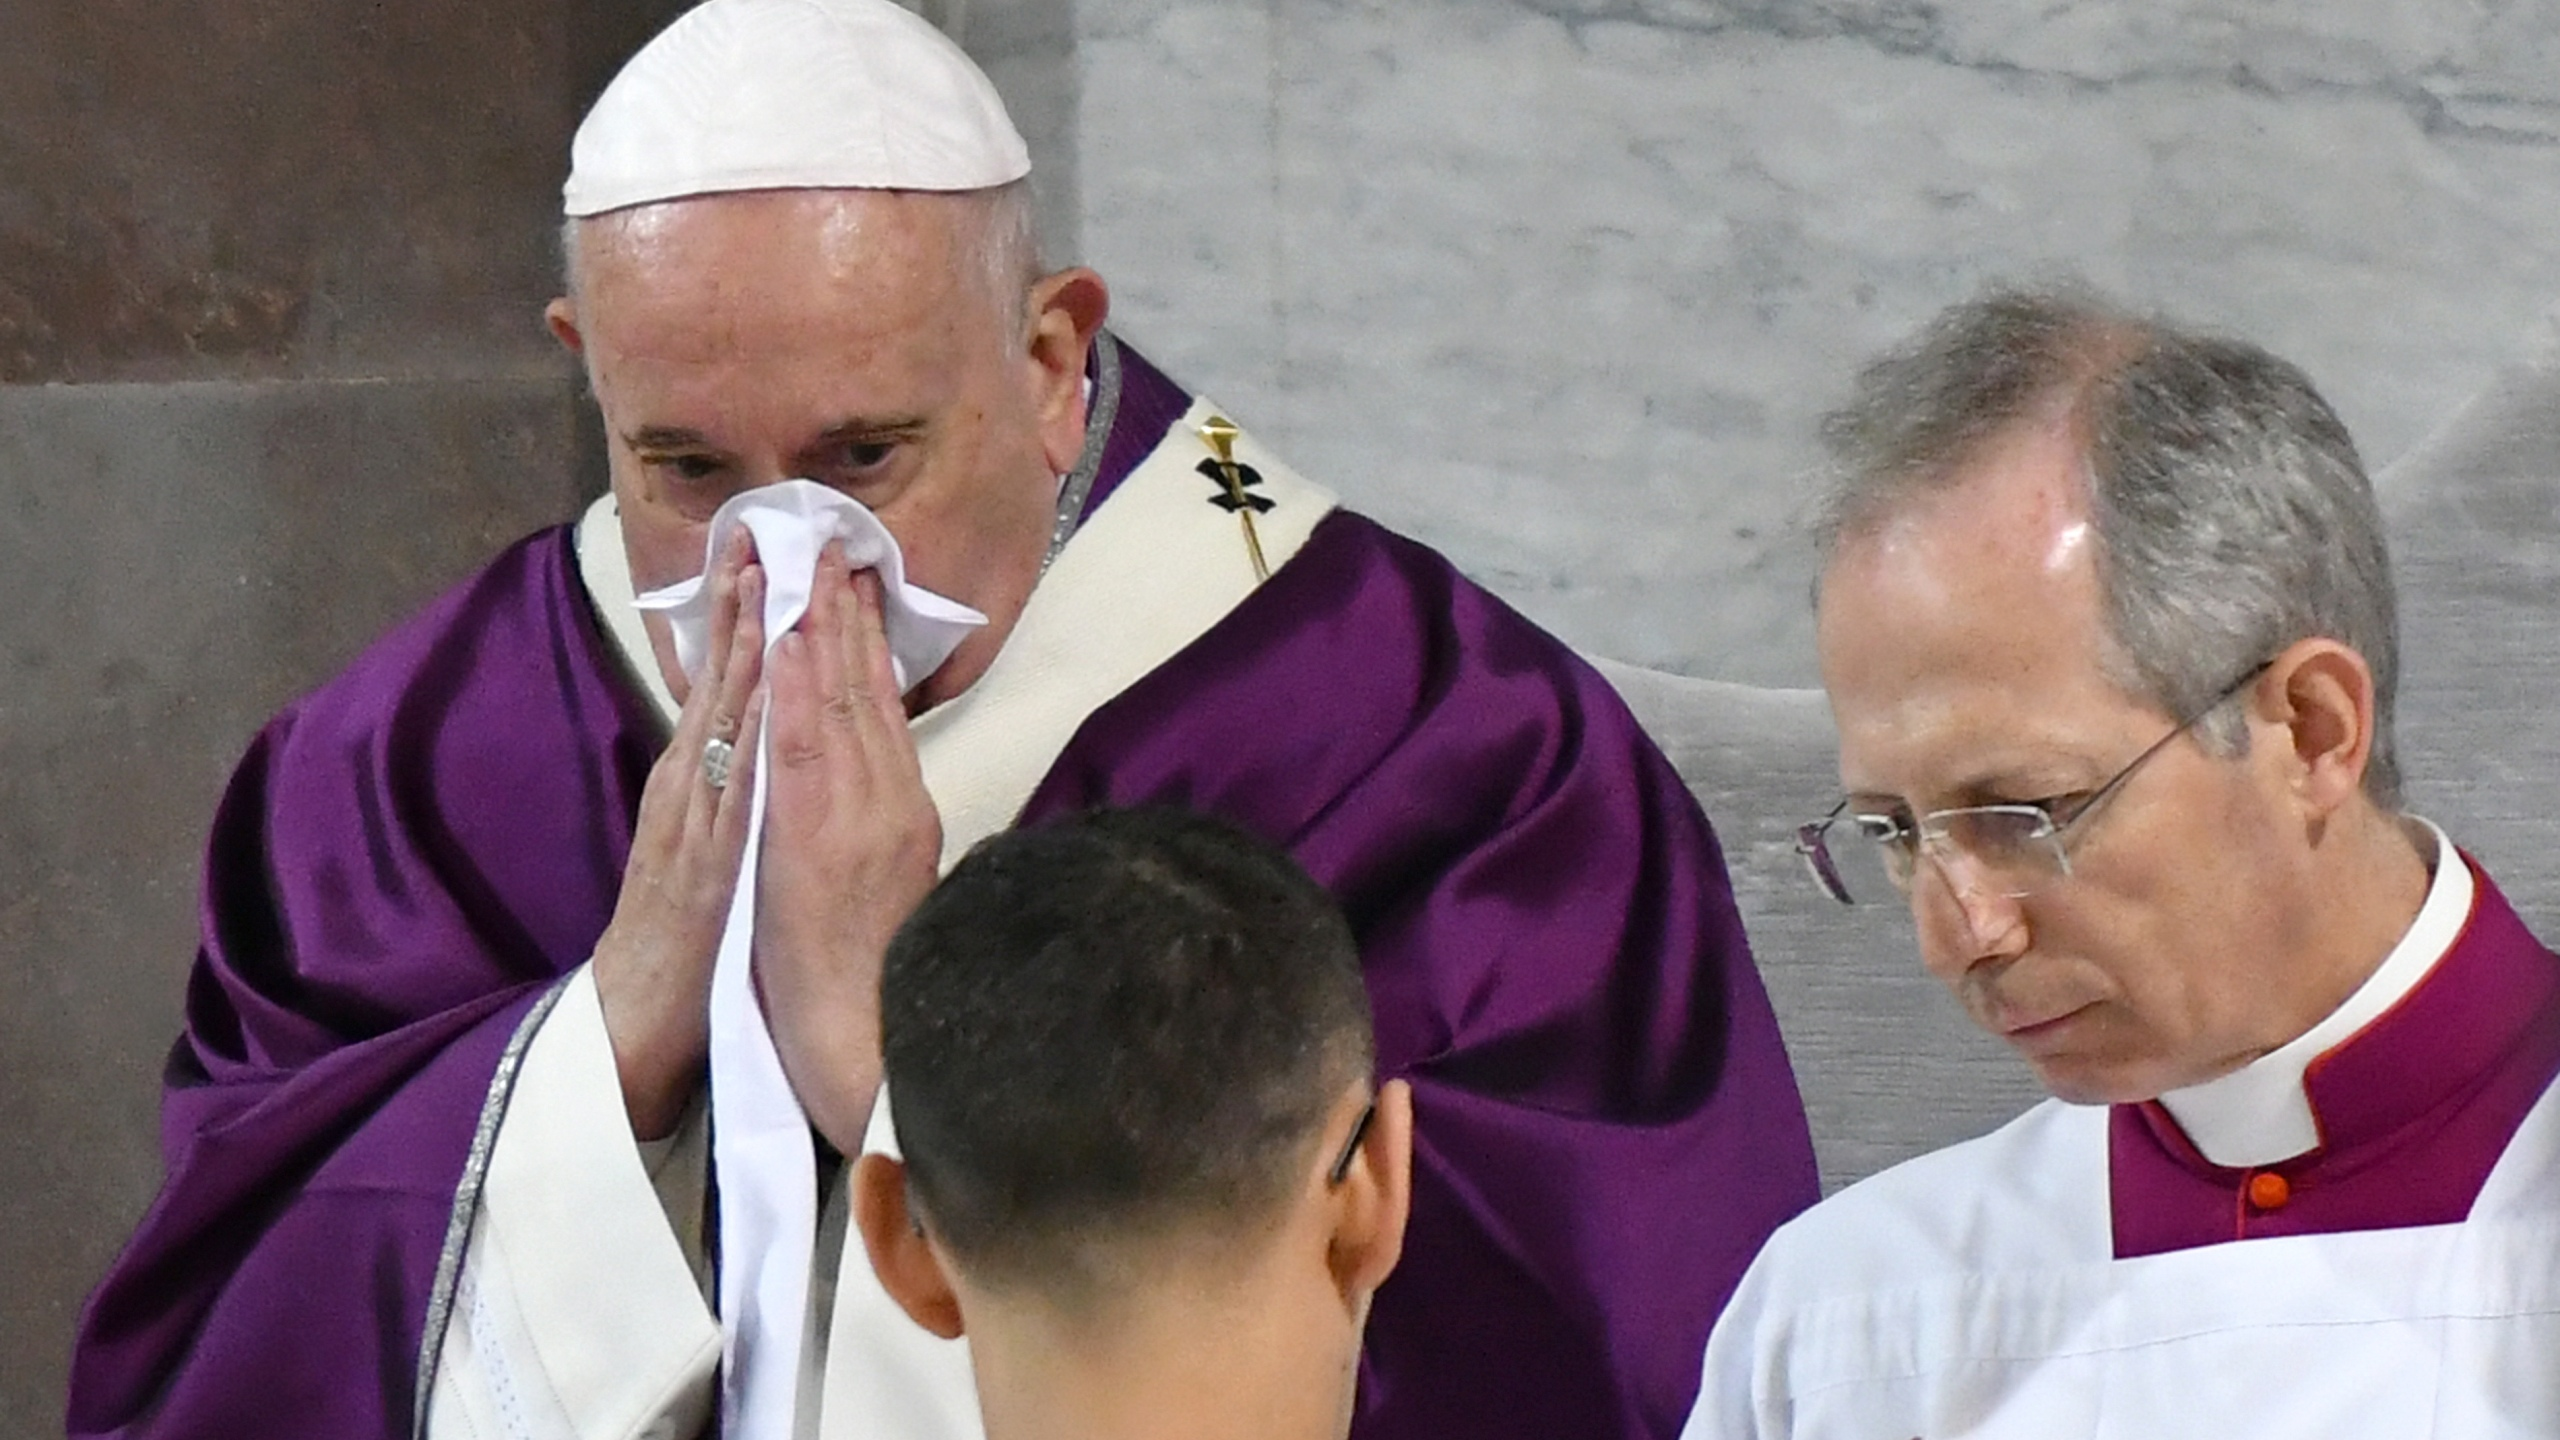 Pope Francis blows his nose as he leads the Ash Wednesday mass on February 26, 2020, at the Santa Sabina church in Rome. (ALBERTO PIZZOLI/AFP via Getty Images)